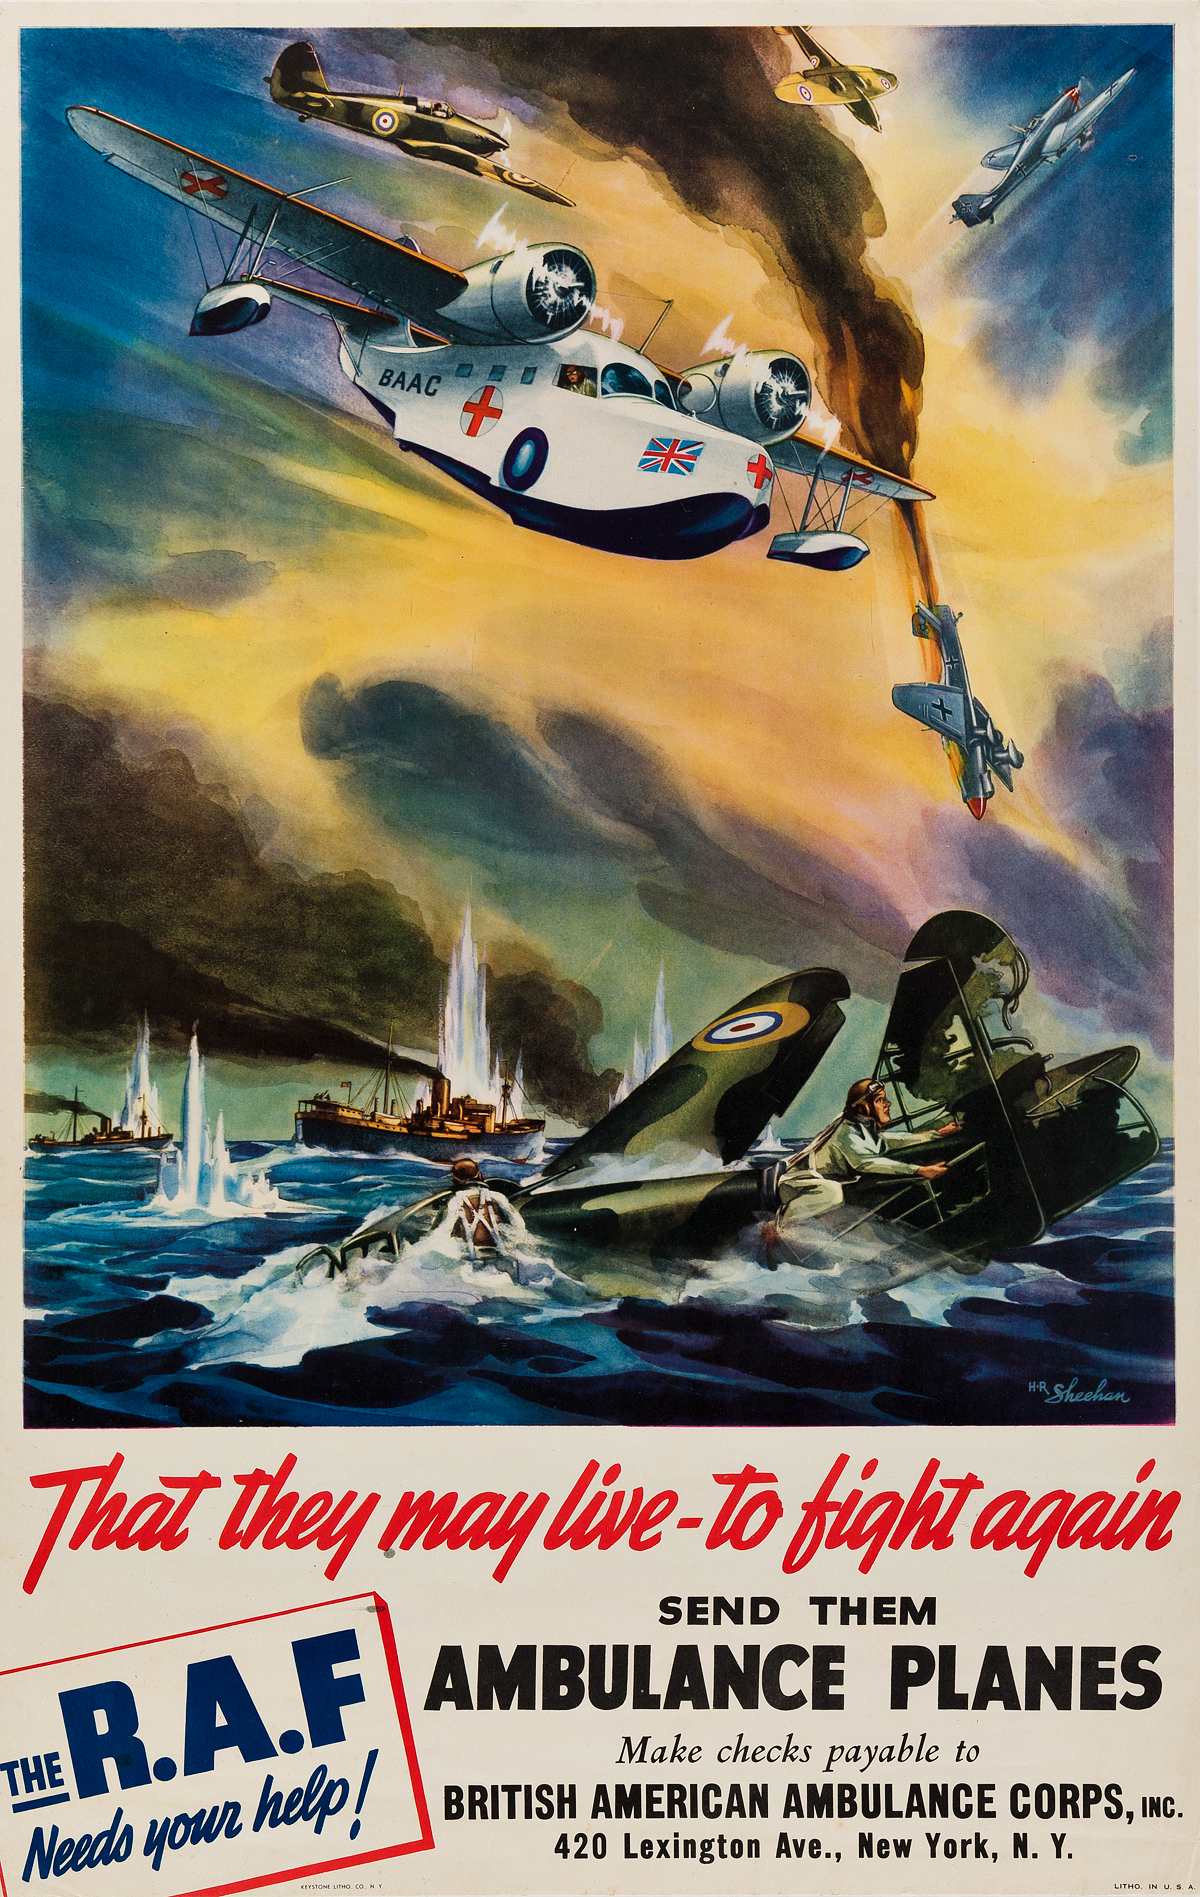 HR-SHEEHAN-(DATES-UNKNOWN)-RAF--THAT-THEY-MAY-LIVE---TO-FIGHT-AGAIN-Circa-1940-28x18-inches-71x45-cm-Keystone-Litho-Co-Ne